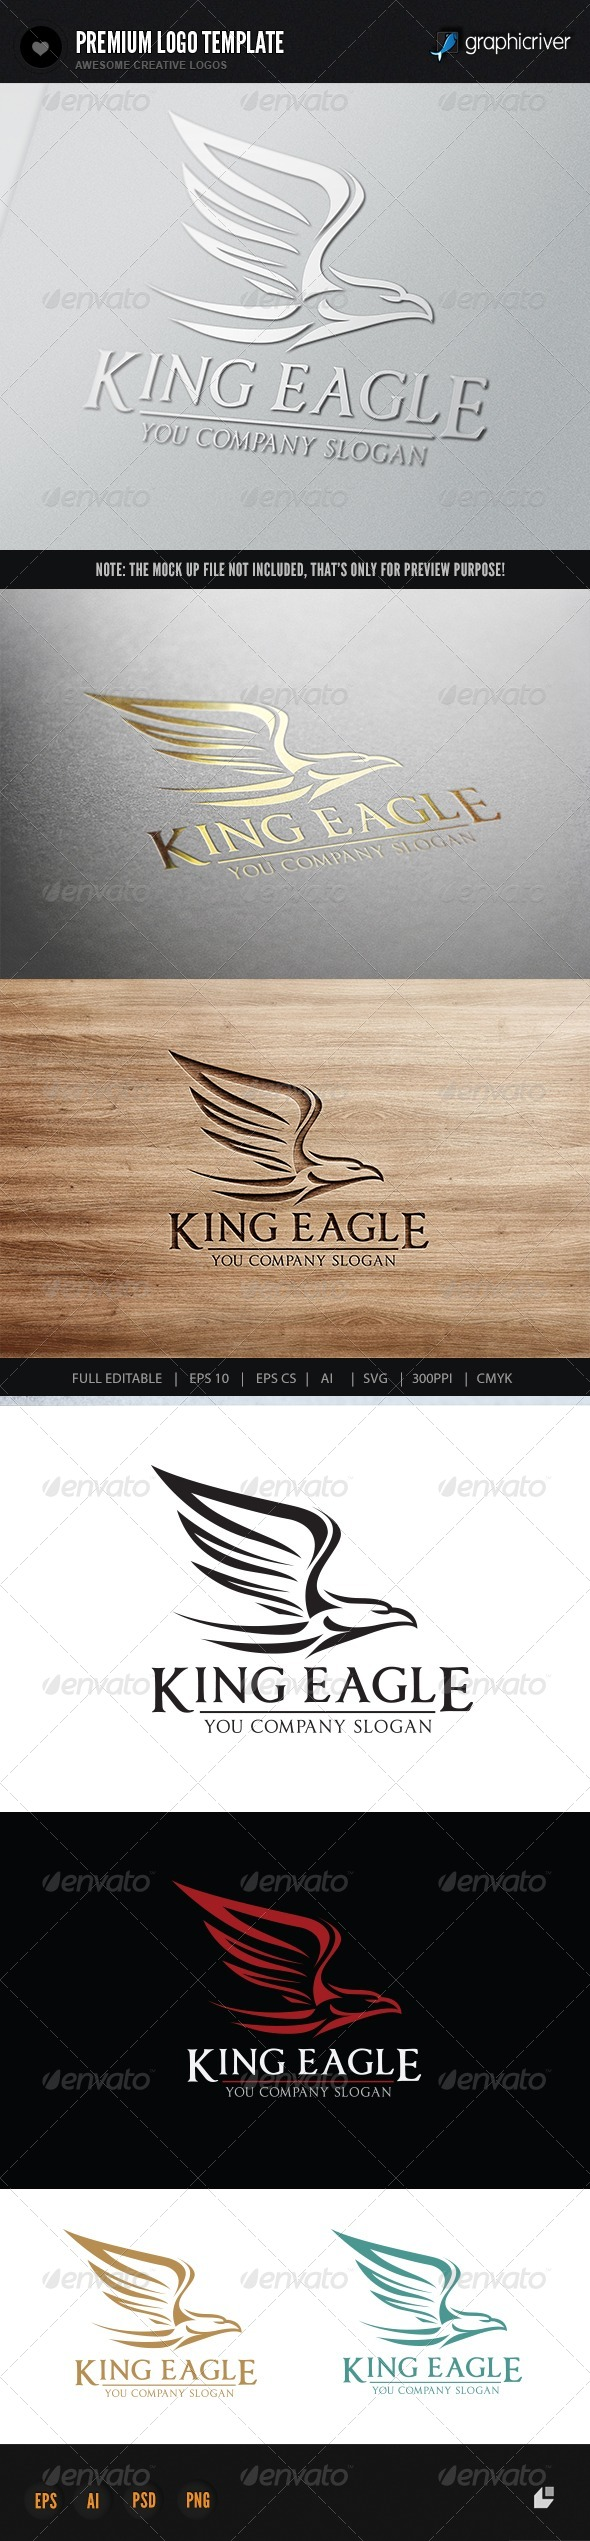 GraphicRiver King Eagle 7138333